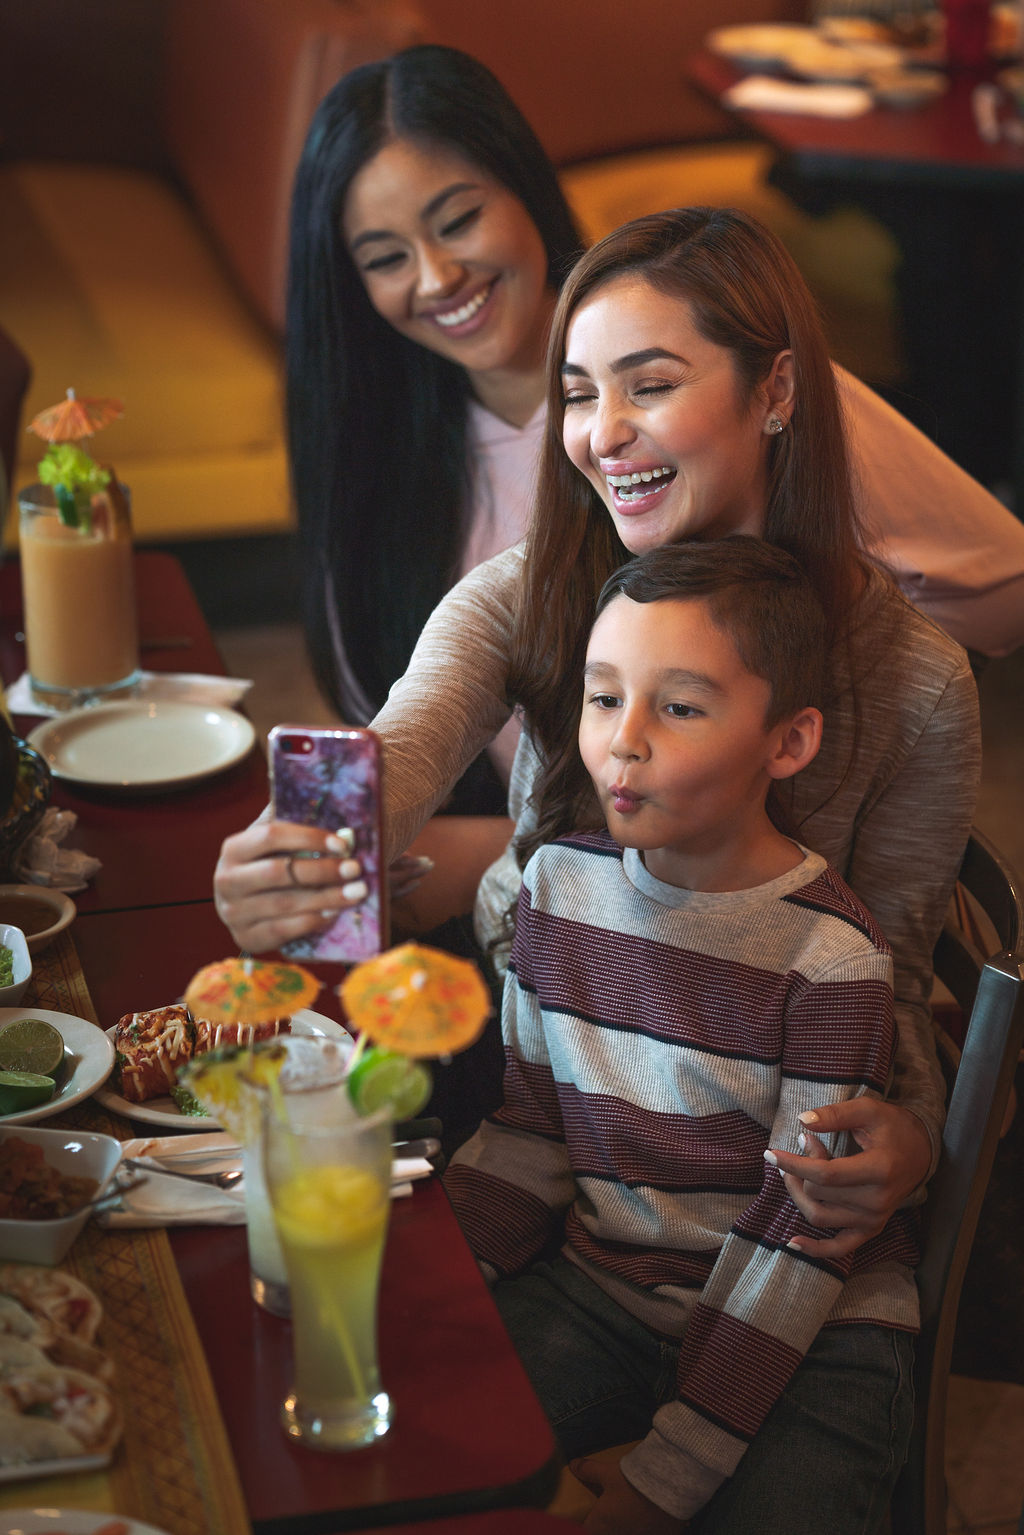 a place for family - Being a family-owned restaurant, we always put family first. and at Los Reyes, you are family.